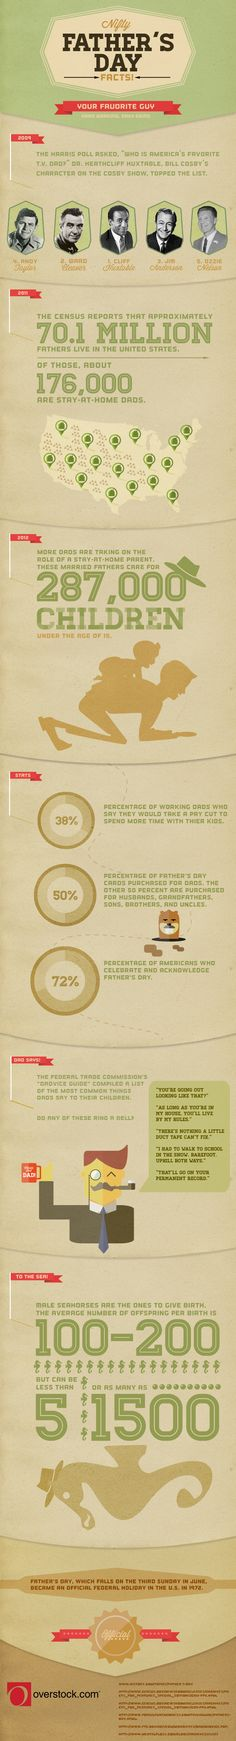 Nifty Father's Day Facts: a Father's Day Infographic from Overstock.com